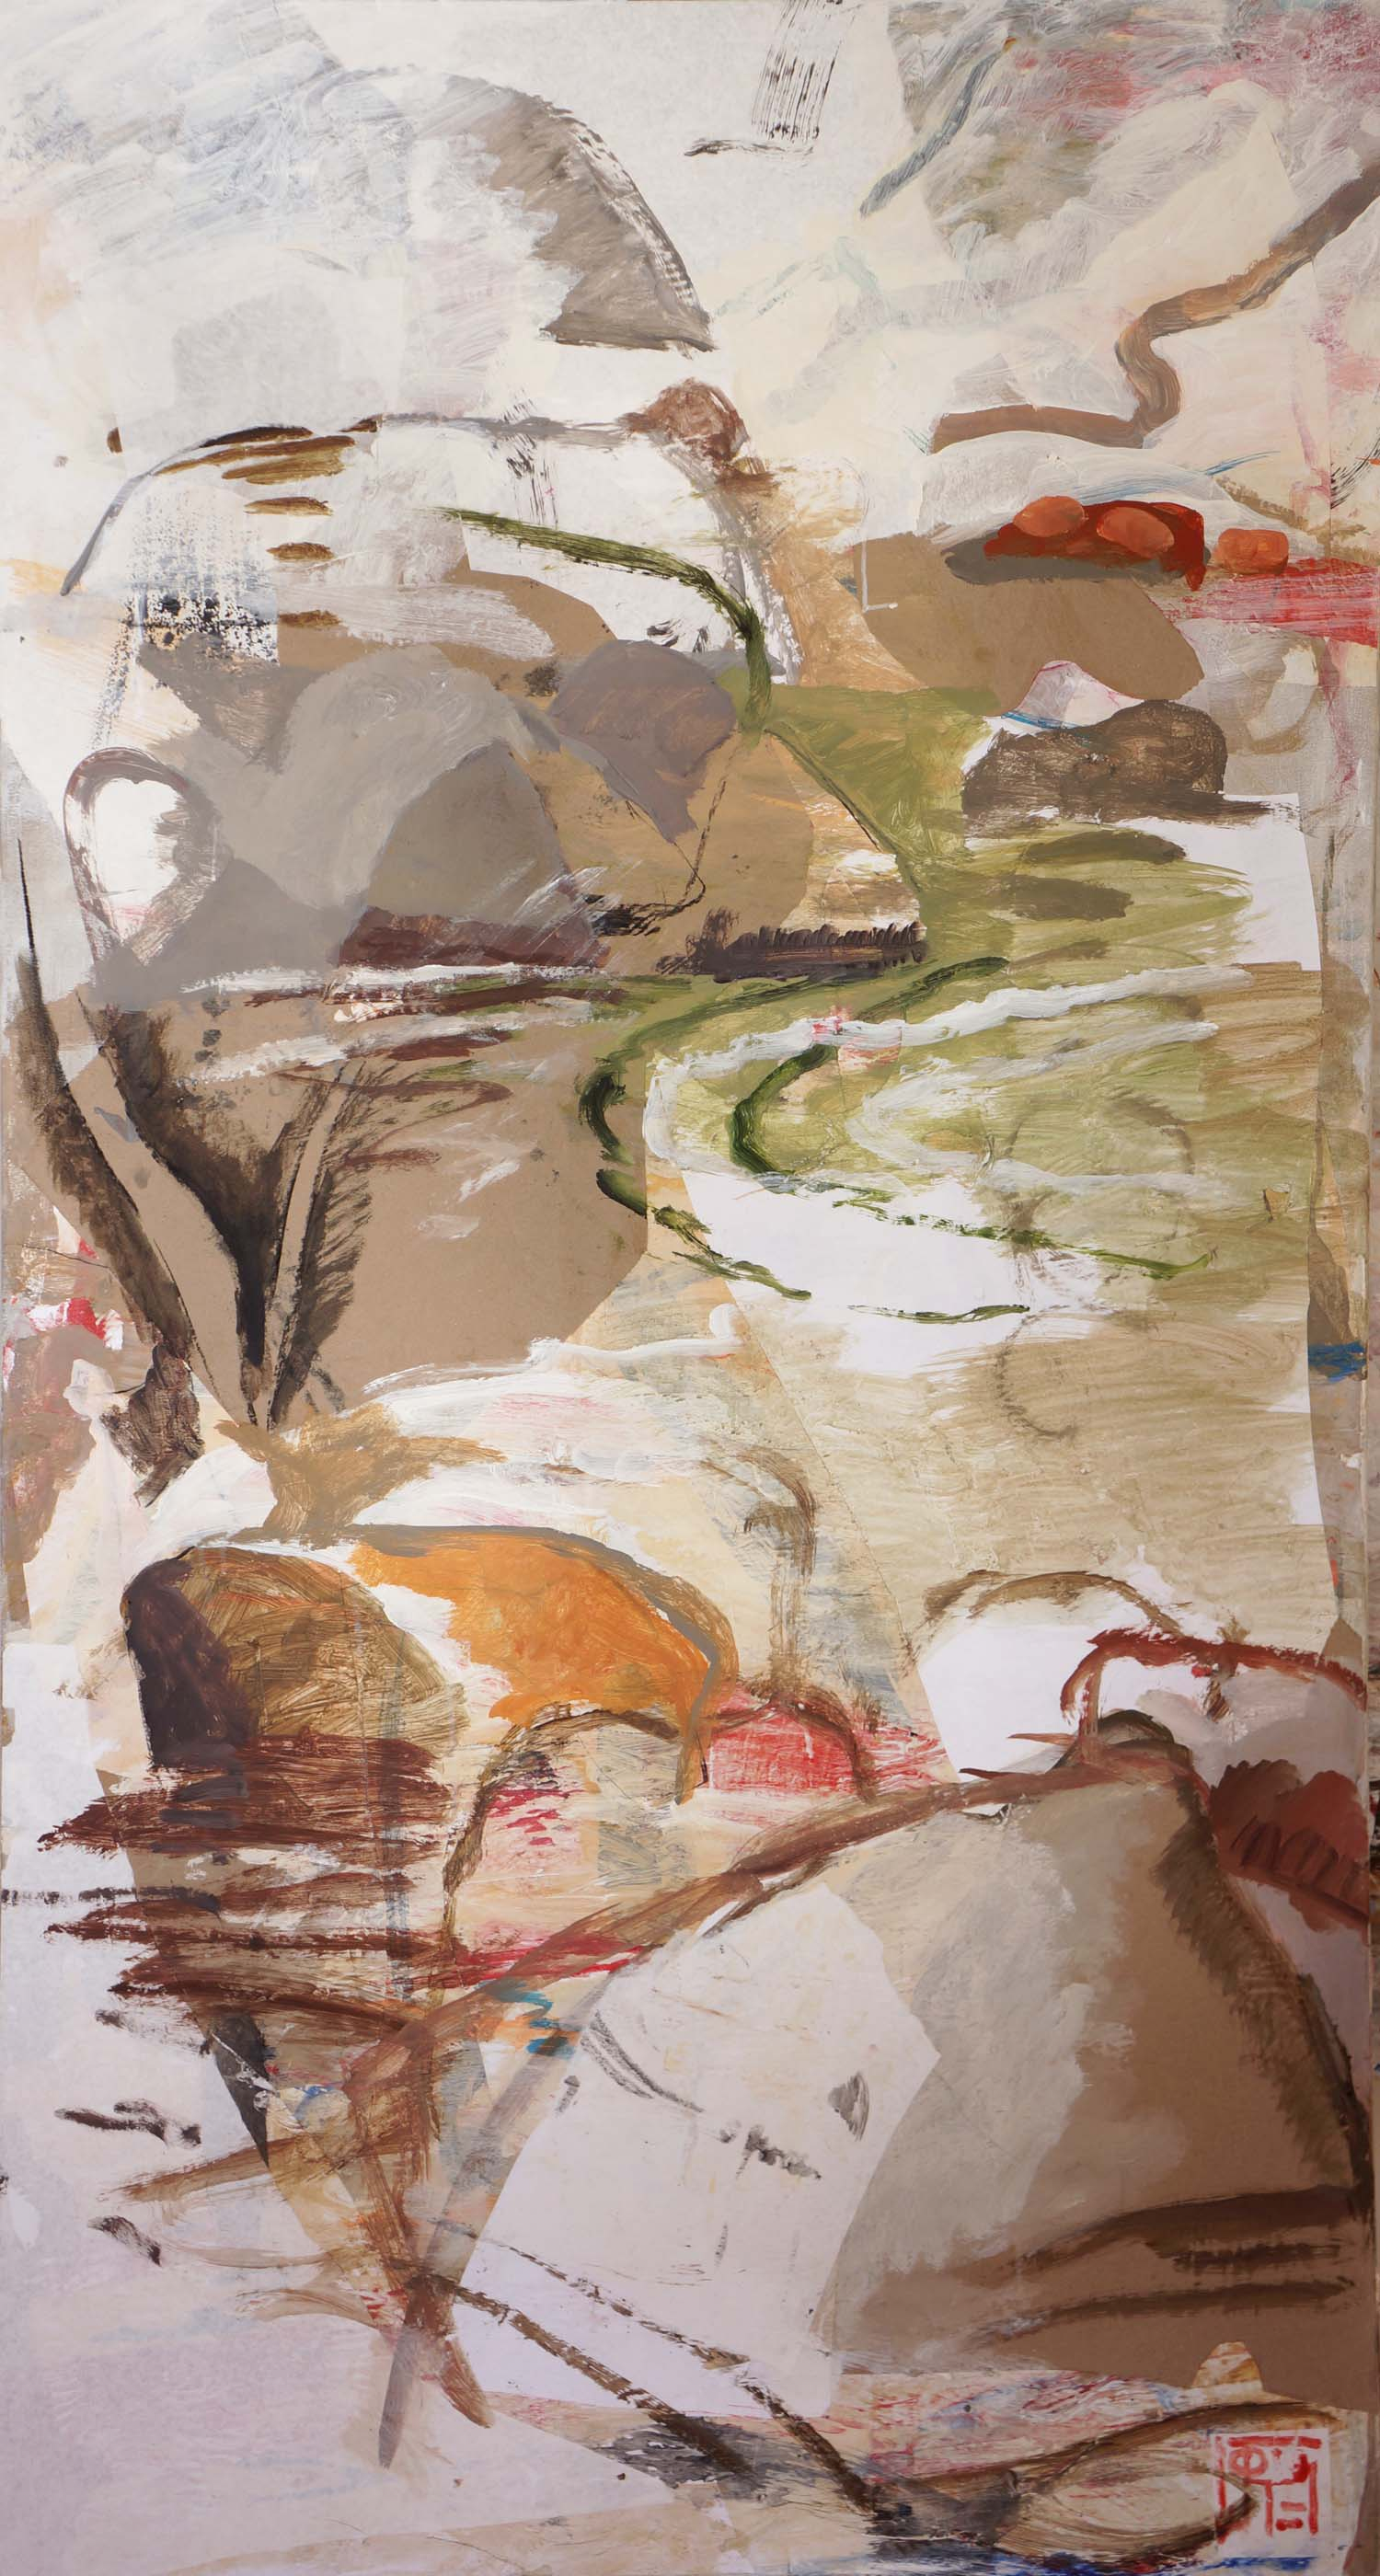 rocky creek  72x38 acrylic & collaged paper on canvas